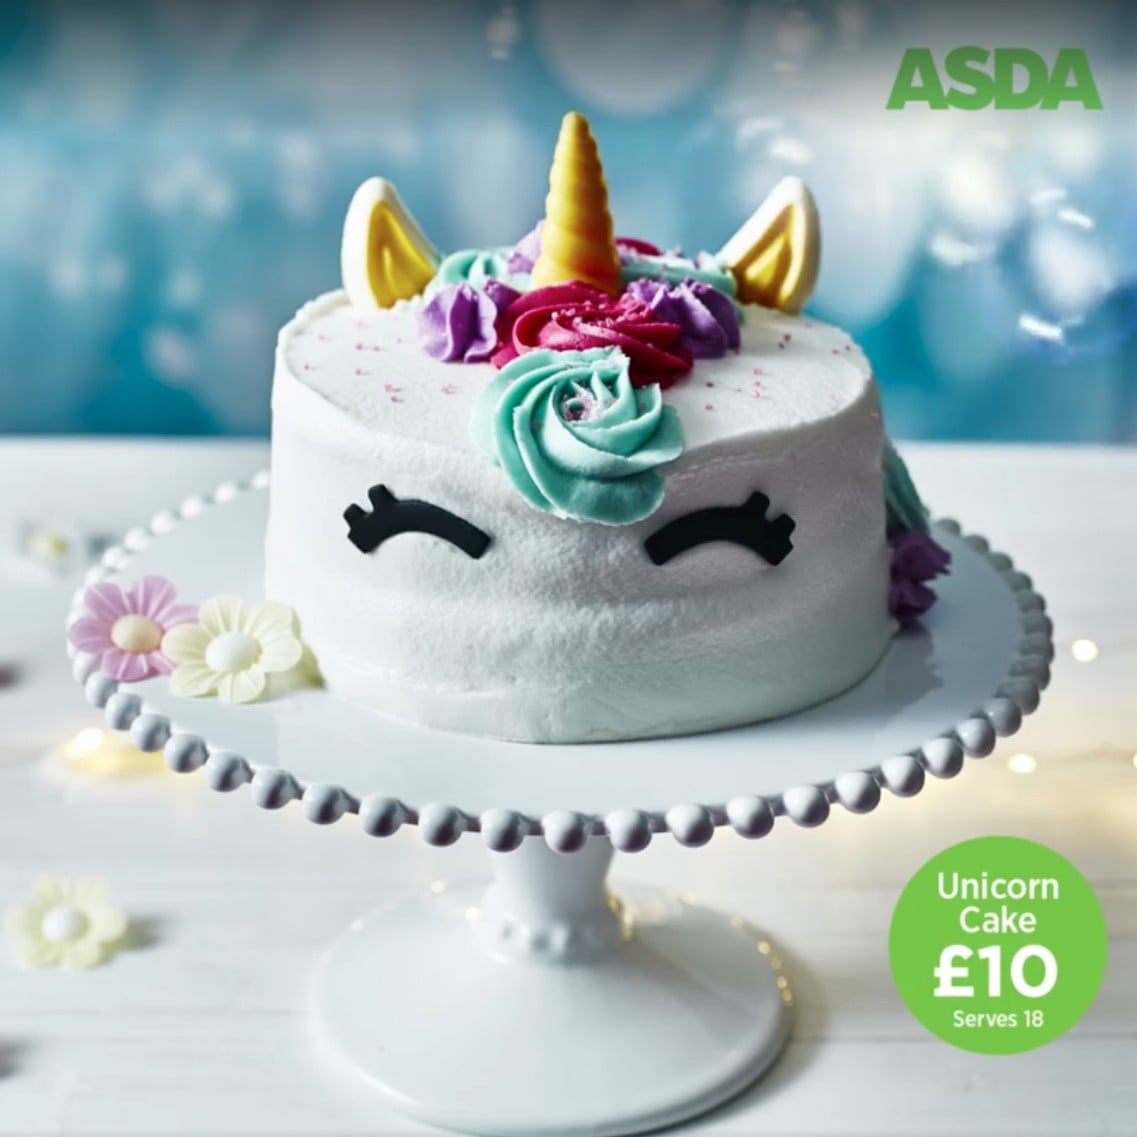 Asda Photo Cake Decorations : photo cakes asda